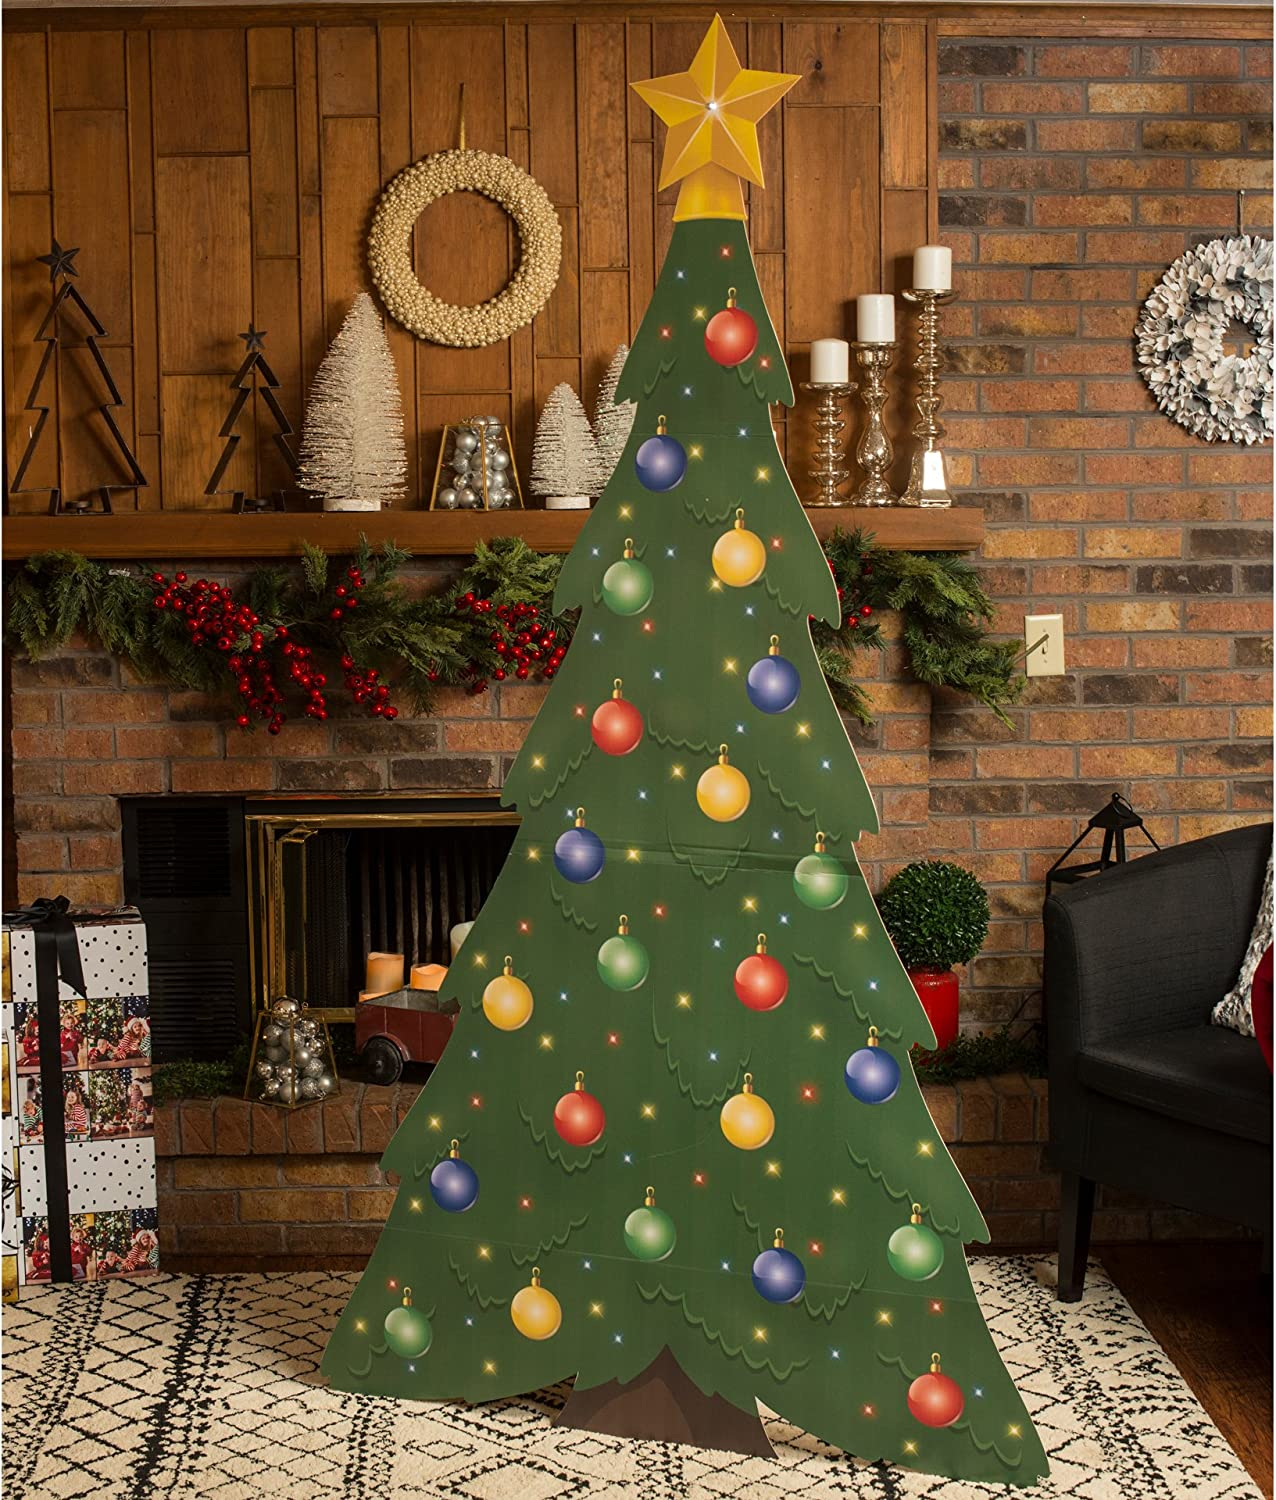 7 ft Large Christmas Tree Standee Standup Photo Booth Prop Background Backdrop Party Decoration Decor Scene Setter Cardboard Cutout